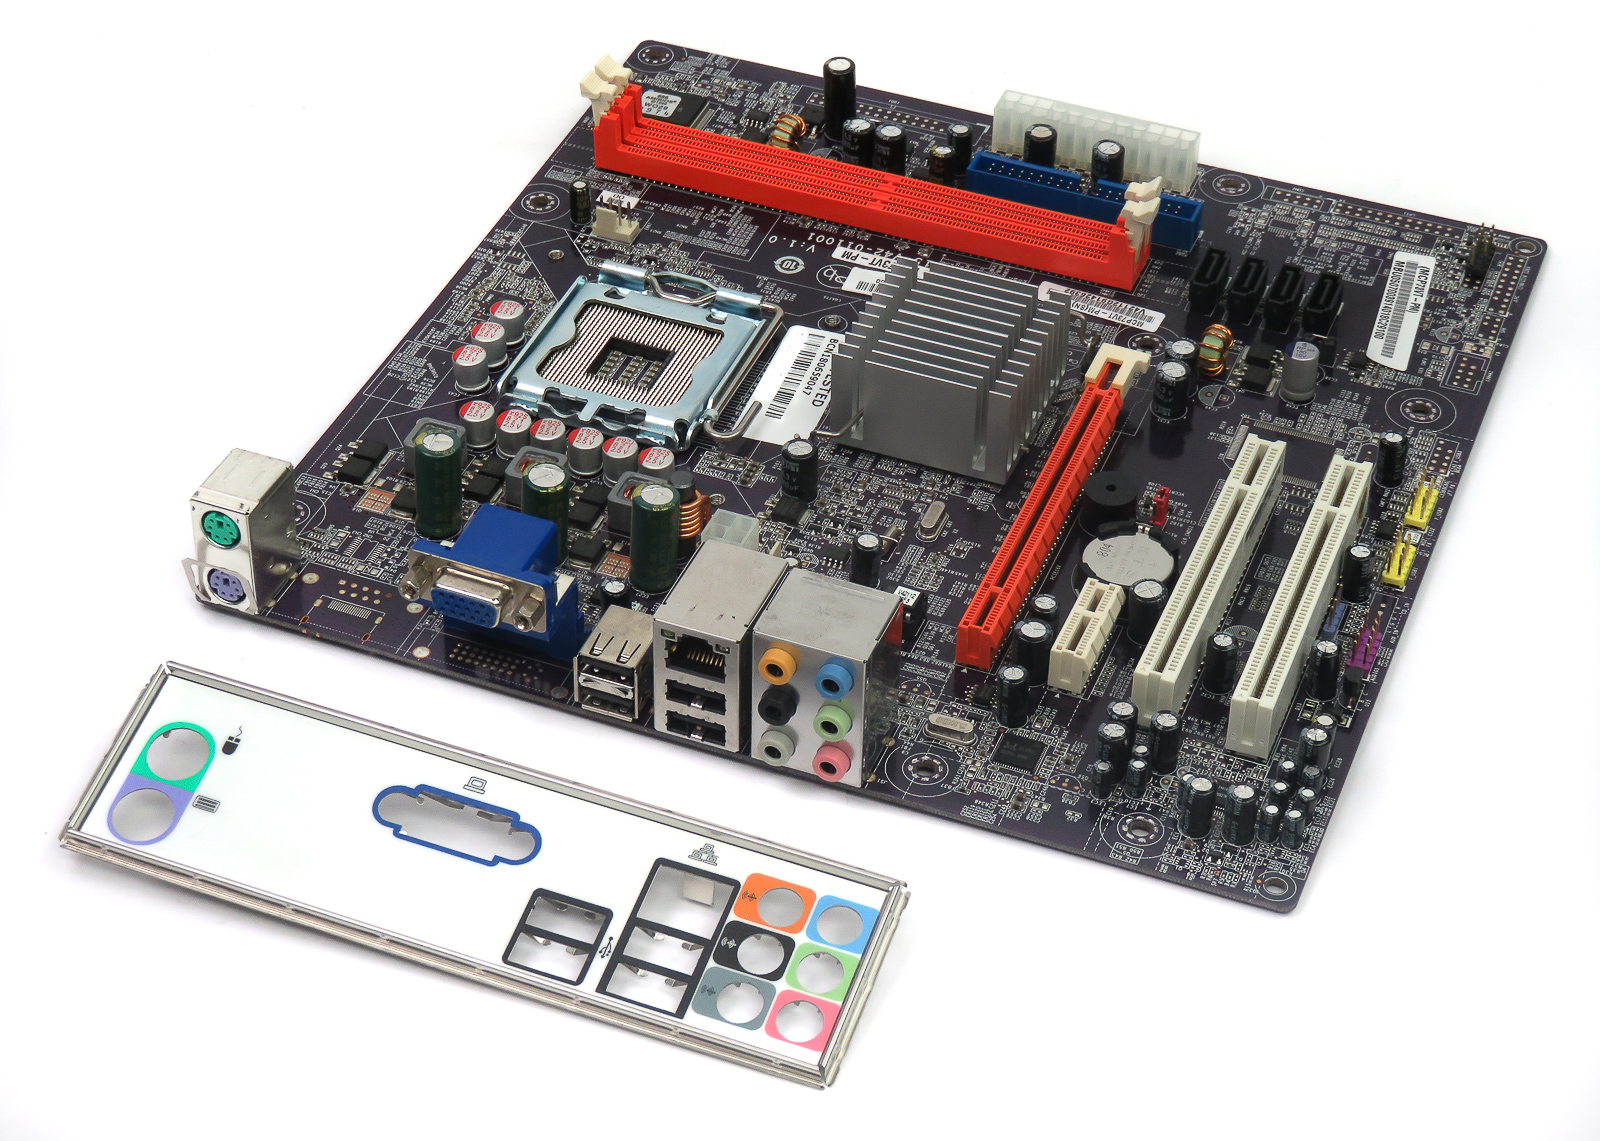 MCP73VT-PM V:1.0 ECS Intel LGA775 PCIe PC Motherboard